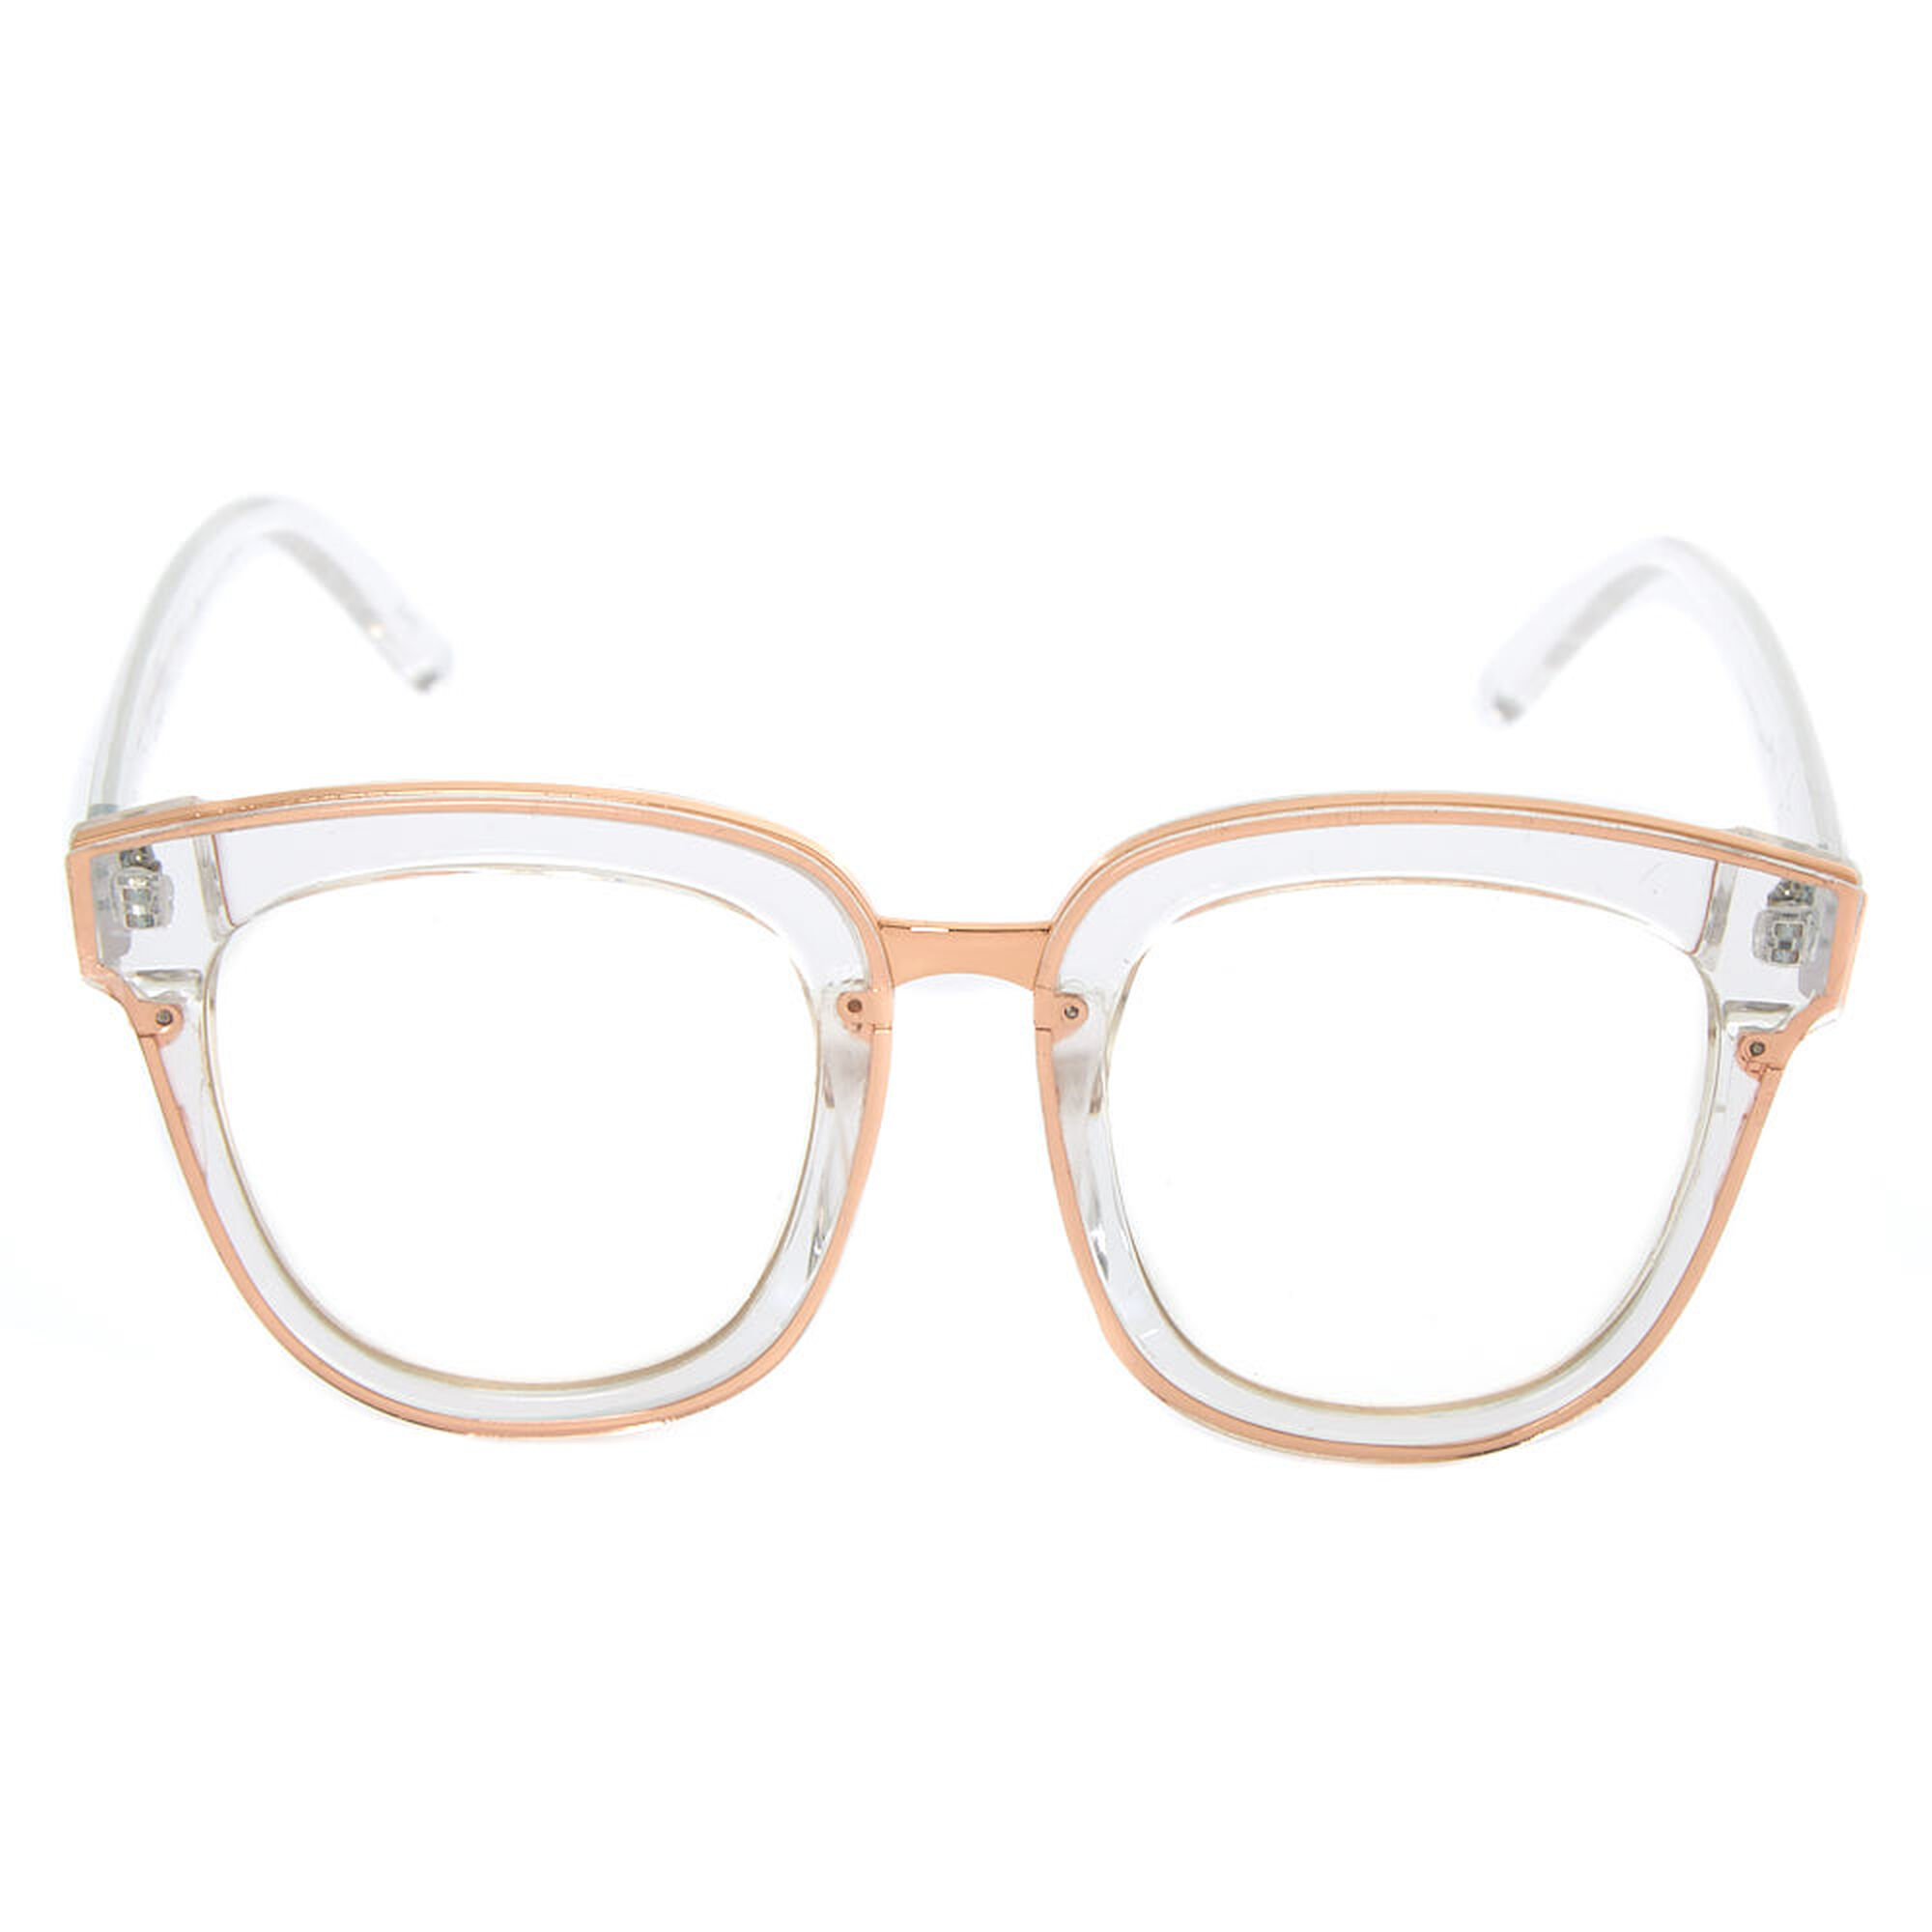 2c1a04647b ... Round Oversized Frames - Clear